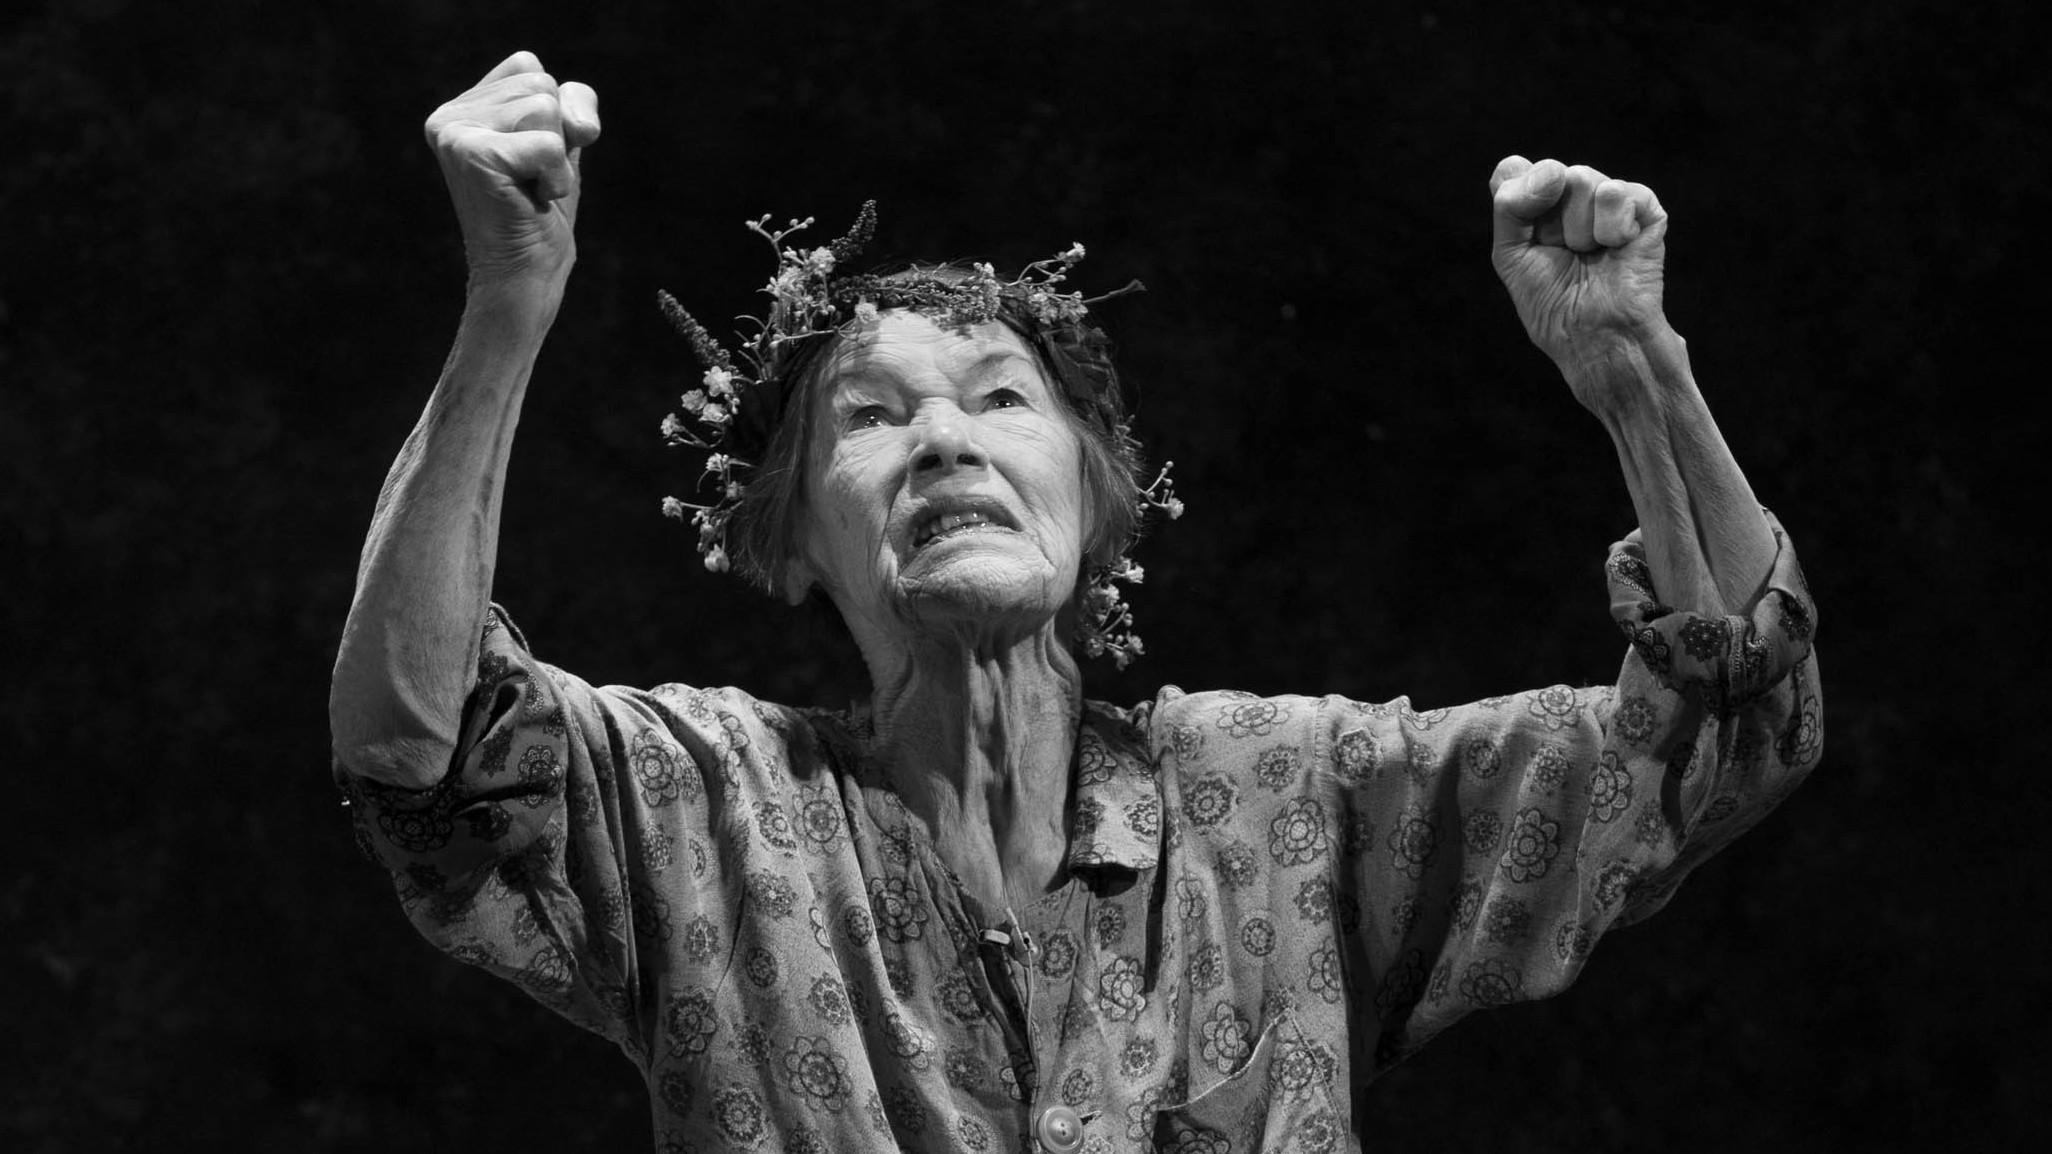 Glenda Jackson On Playing King Lear: Gender Barriers 'Crack' With Age